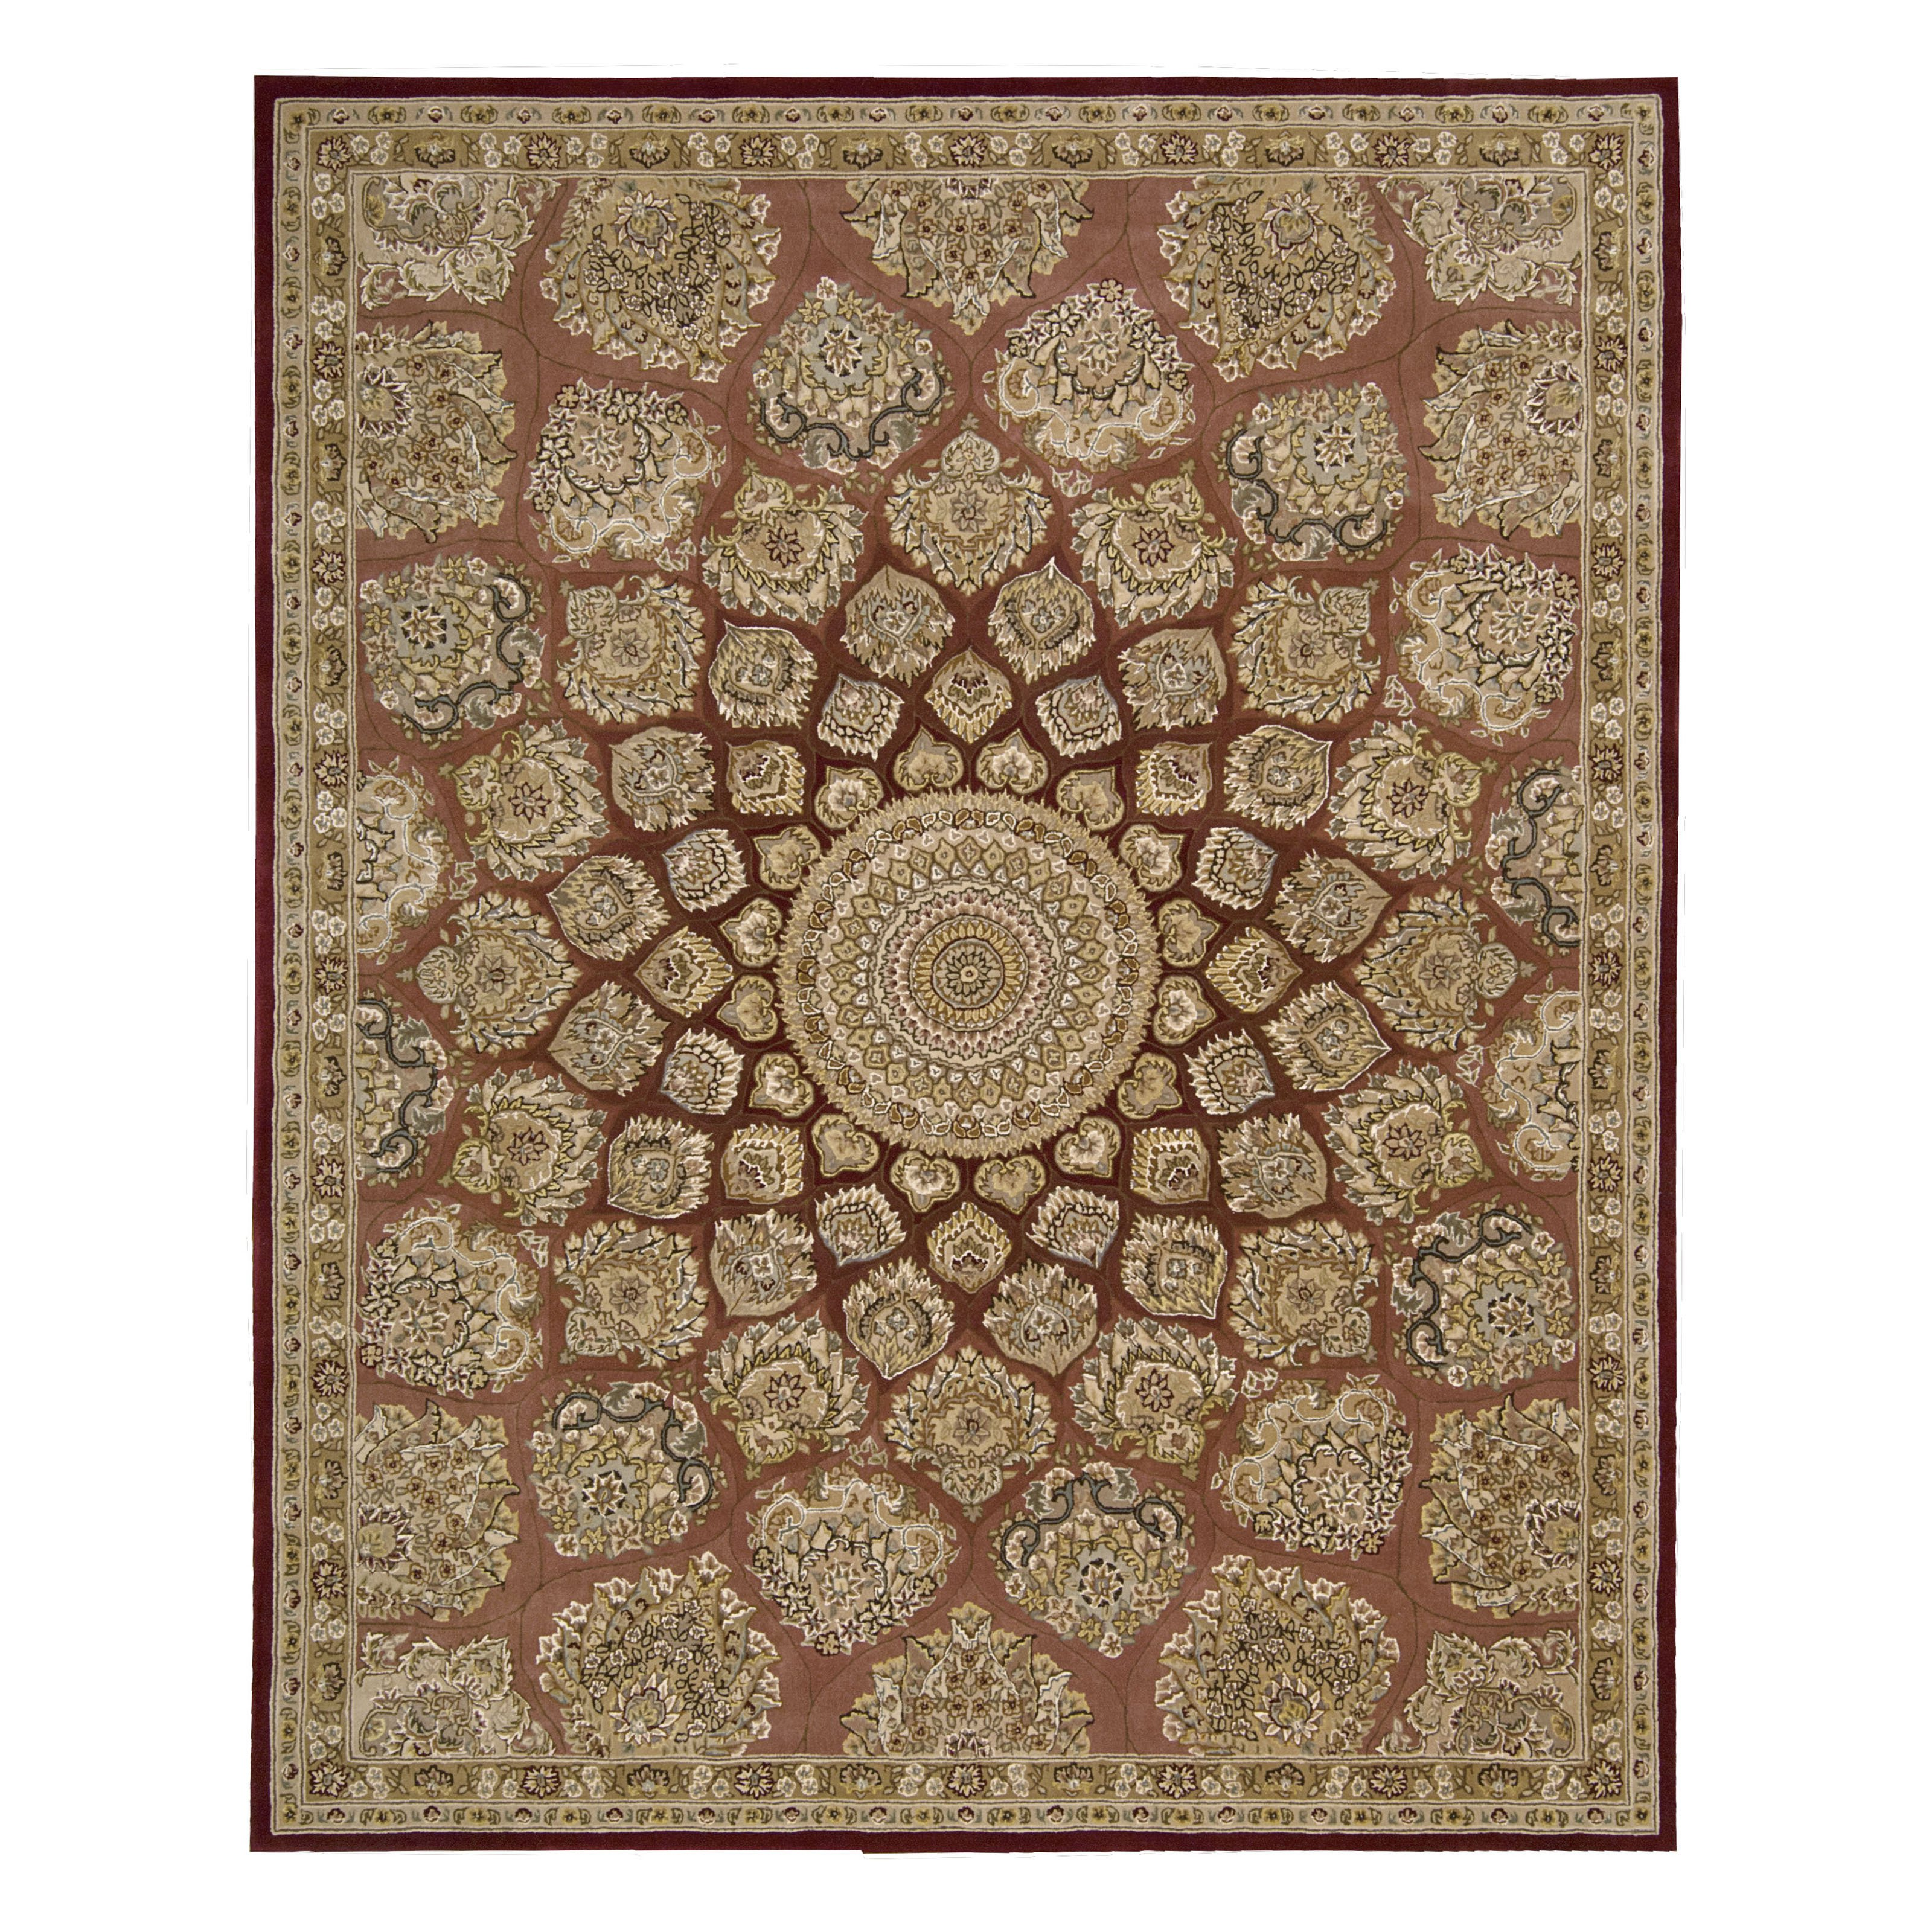 Nourison 2000 2318 Indoor Area Rug Brown by Nourison Rug Corp